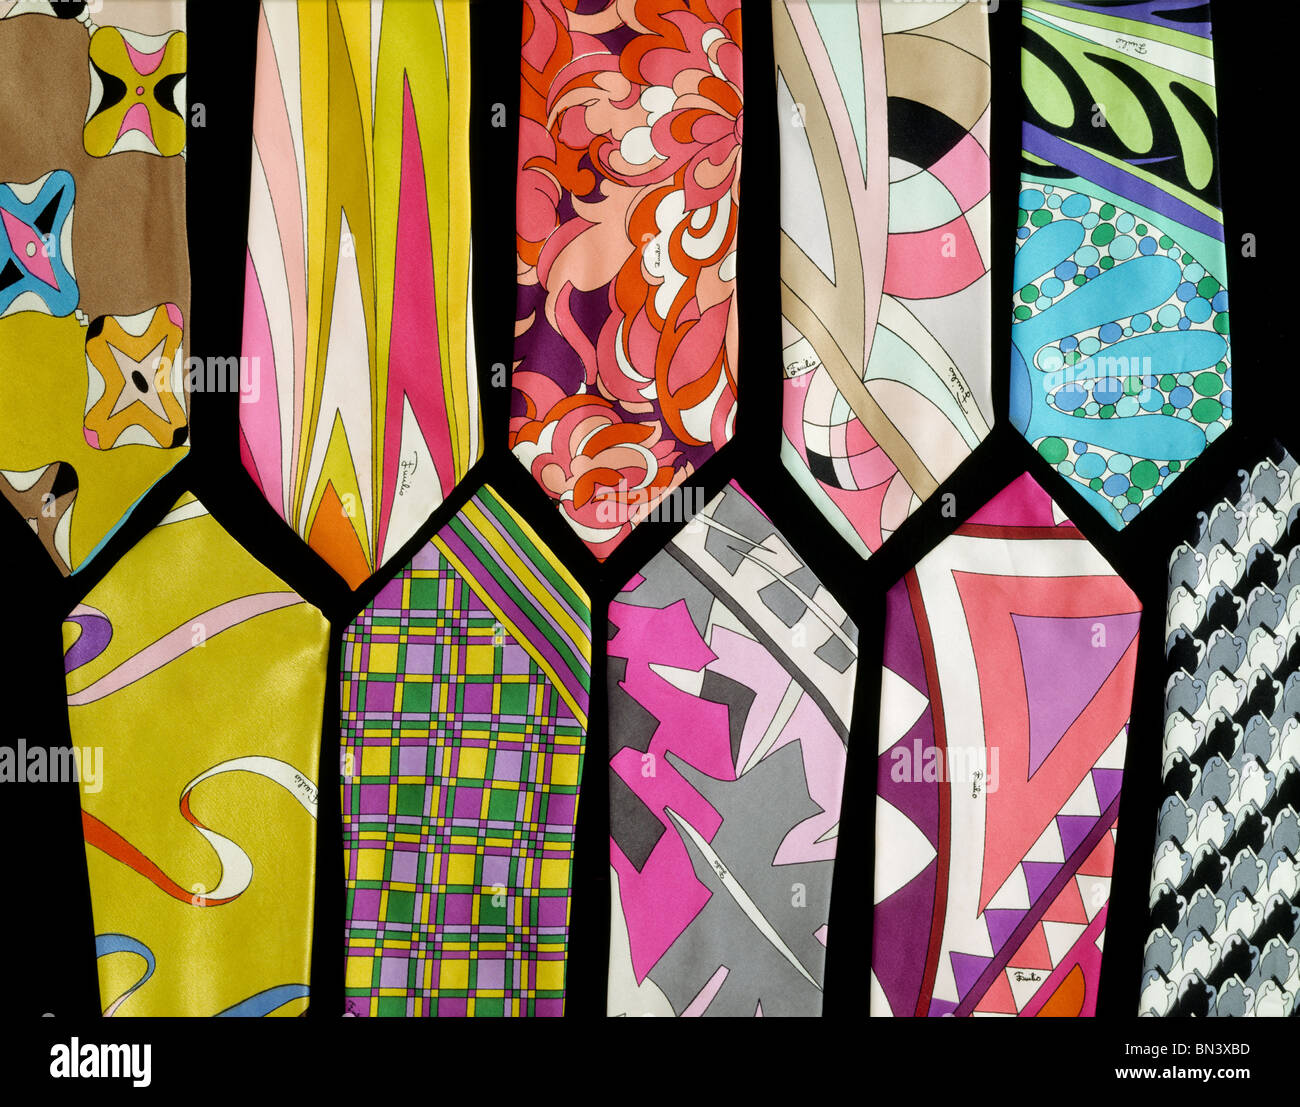 Ten ties, by Emilio Pucci. Italy, 1960 - Stock Image